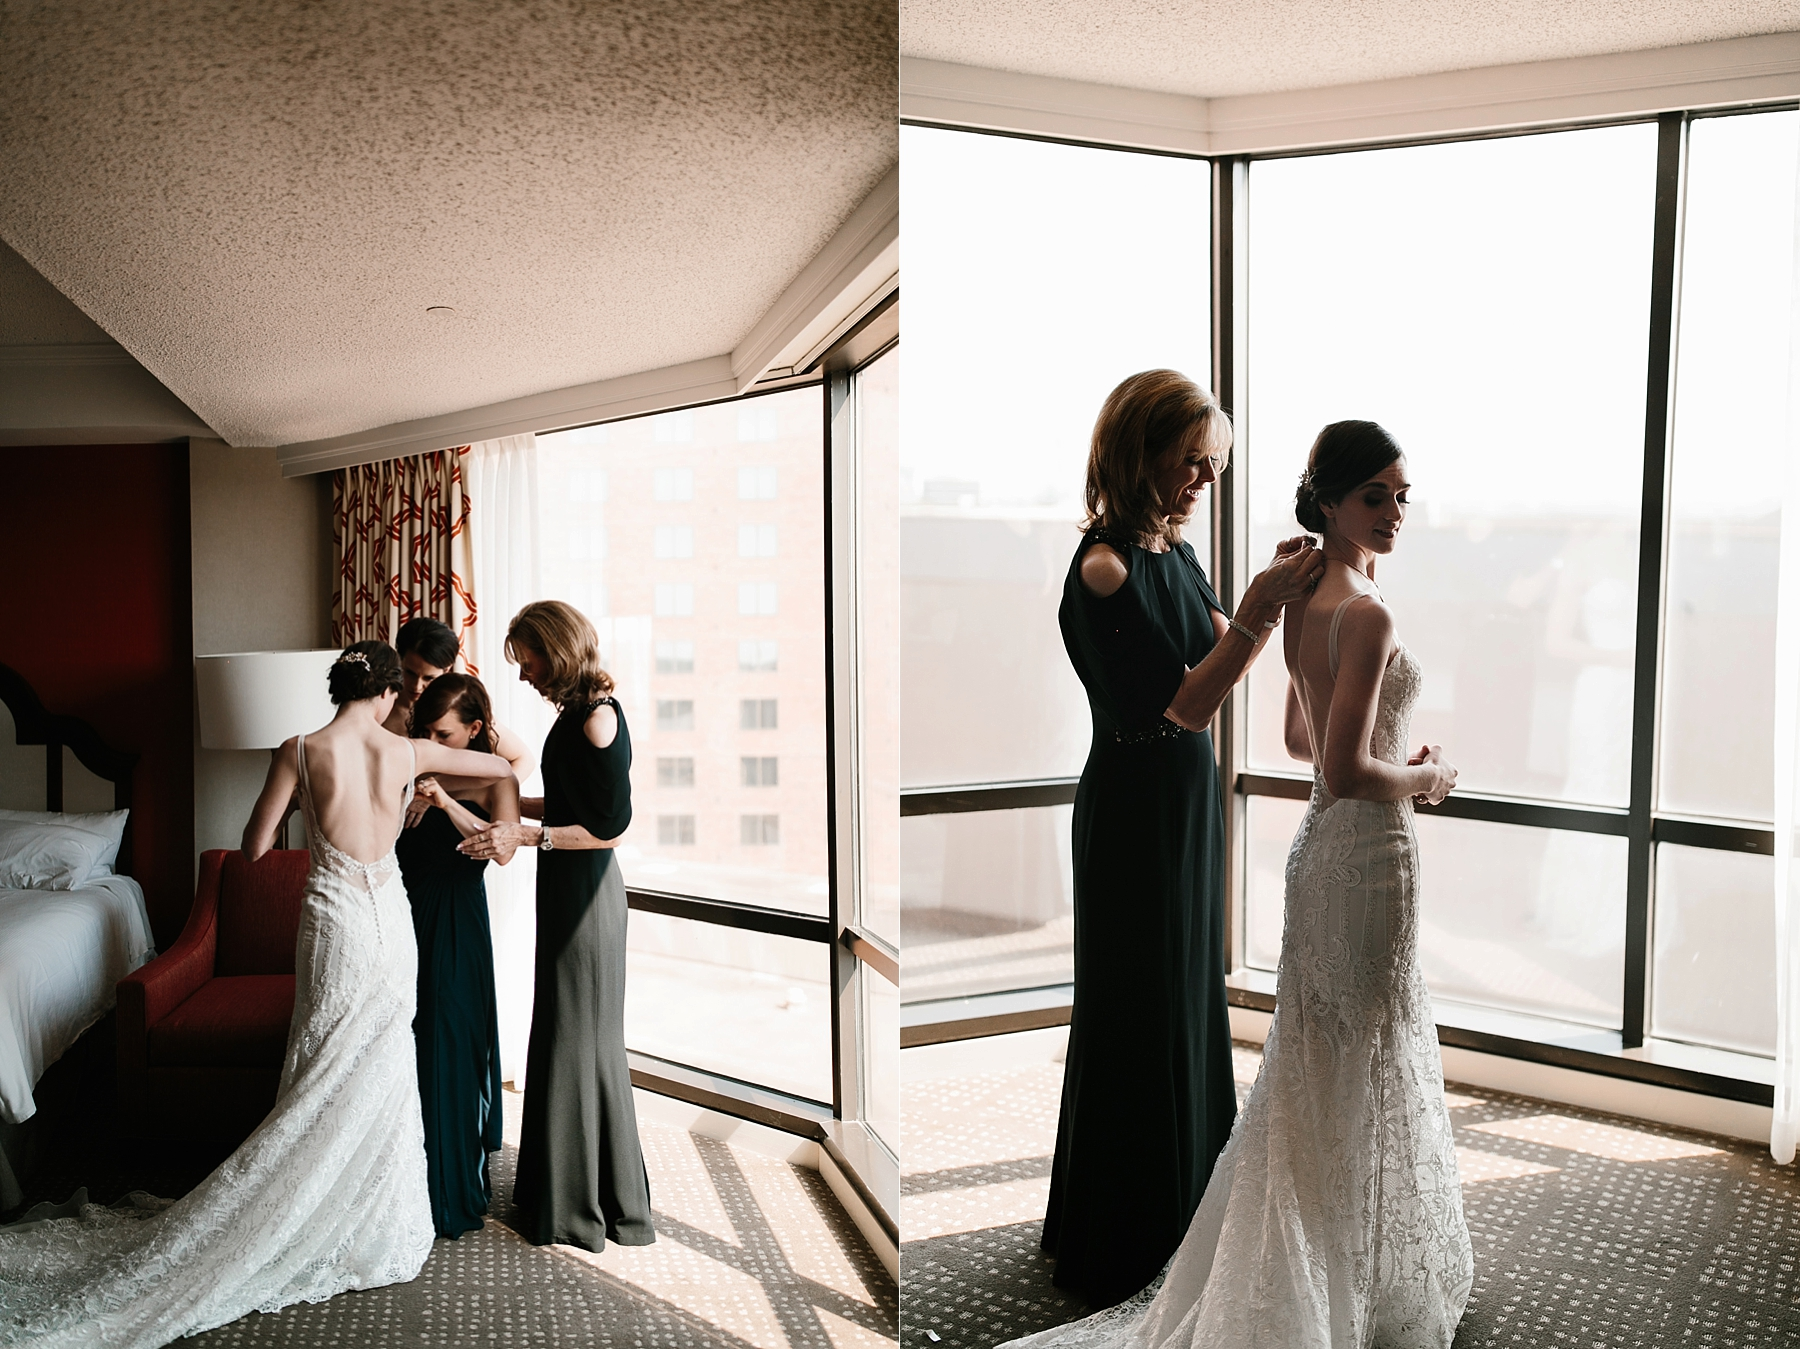 Emily + Caleb _ an elegant, intentional, industrial style wedding with navy + gold accents at 6500 in Dallas, TX by North Texas Wedding Photographer Rachel Meagan Photography _ 039